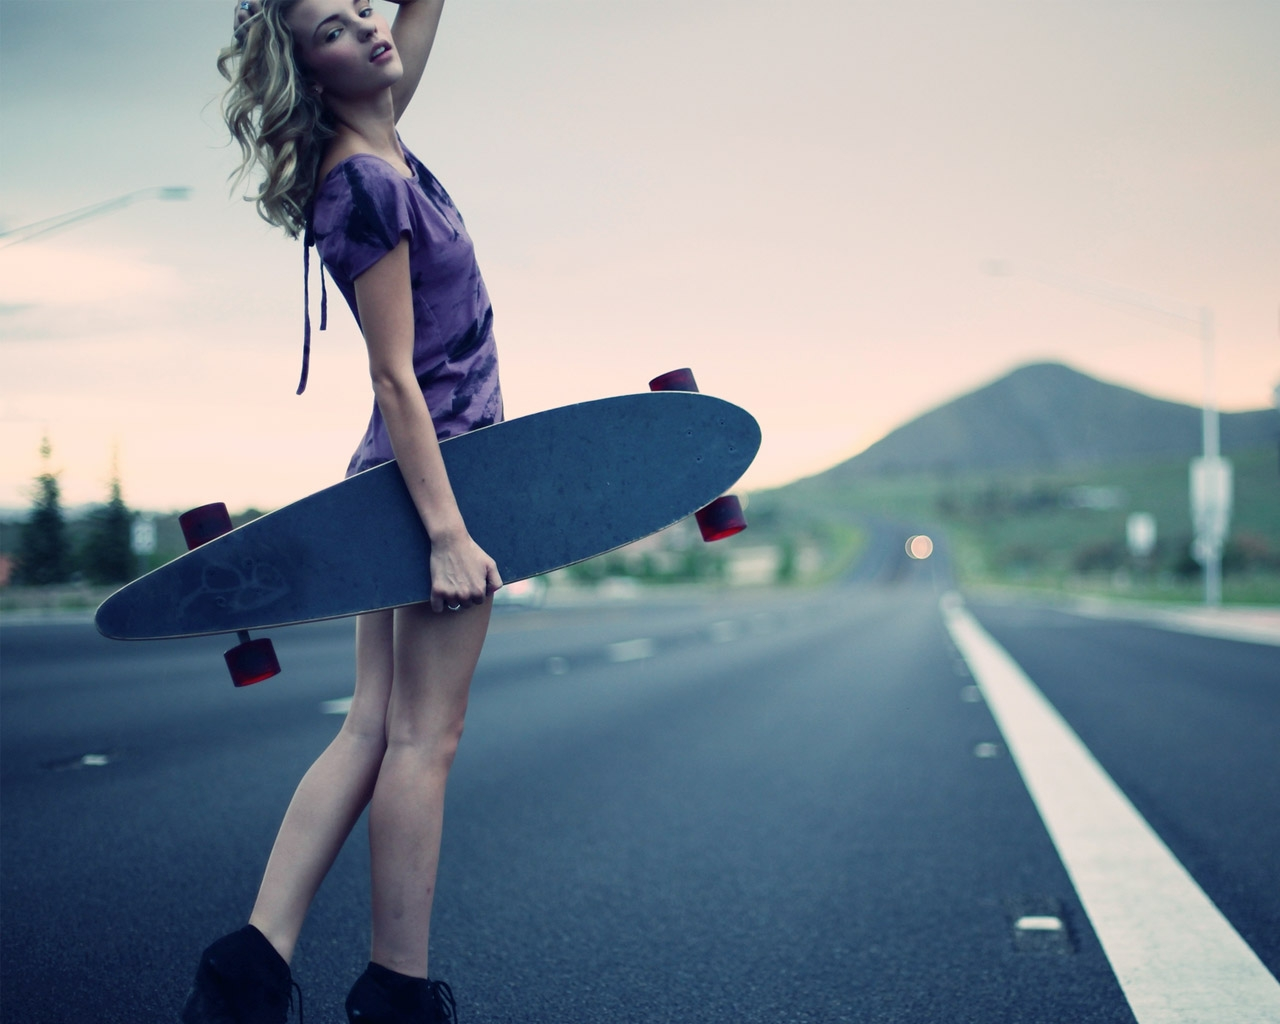 longboard wallpaper 845004 longboard wallpaper 844990 longboard 1280x1024